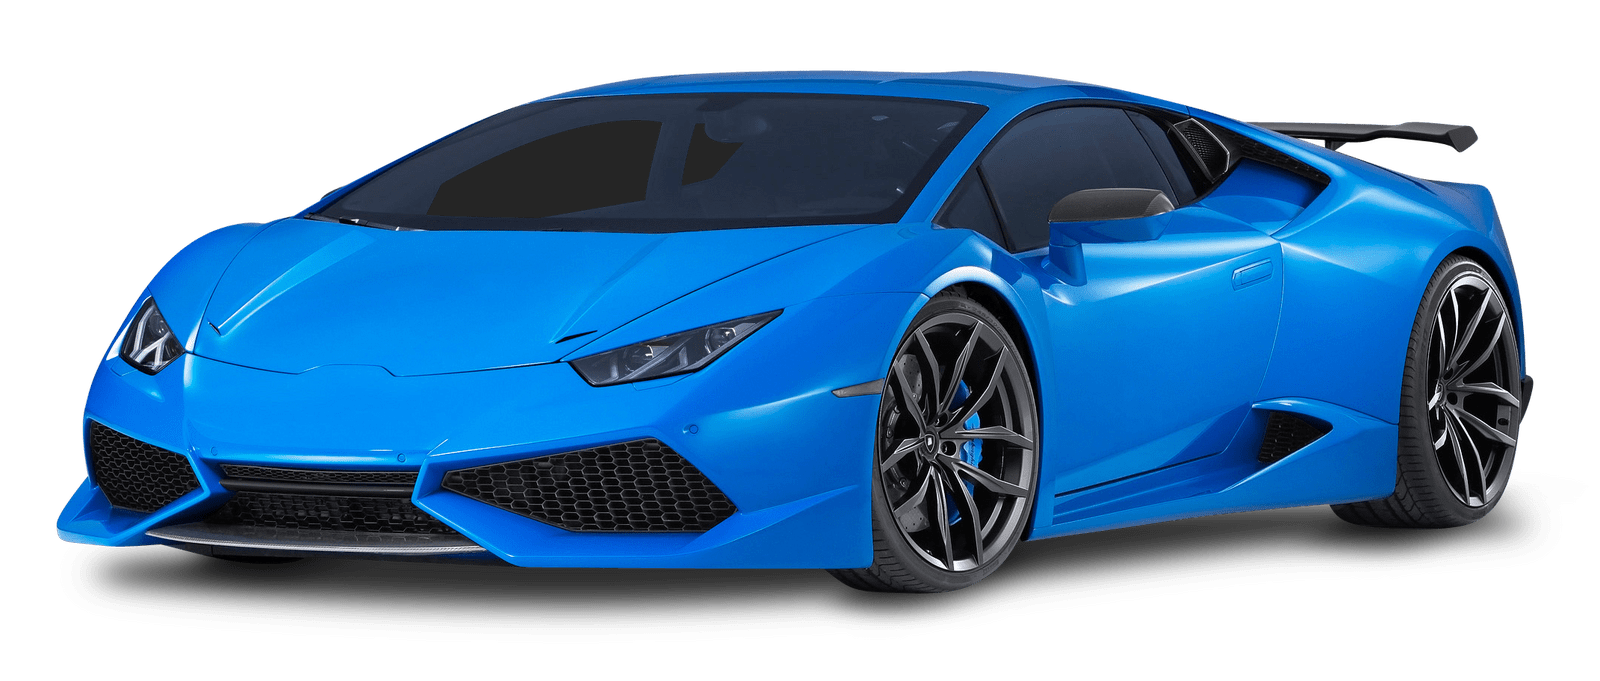 Used Lamborghini Huracan Performante in North Miami Beach